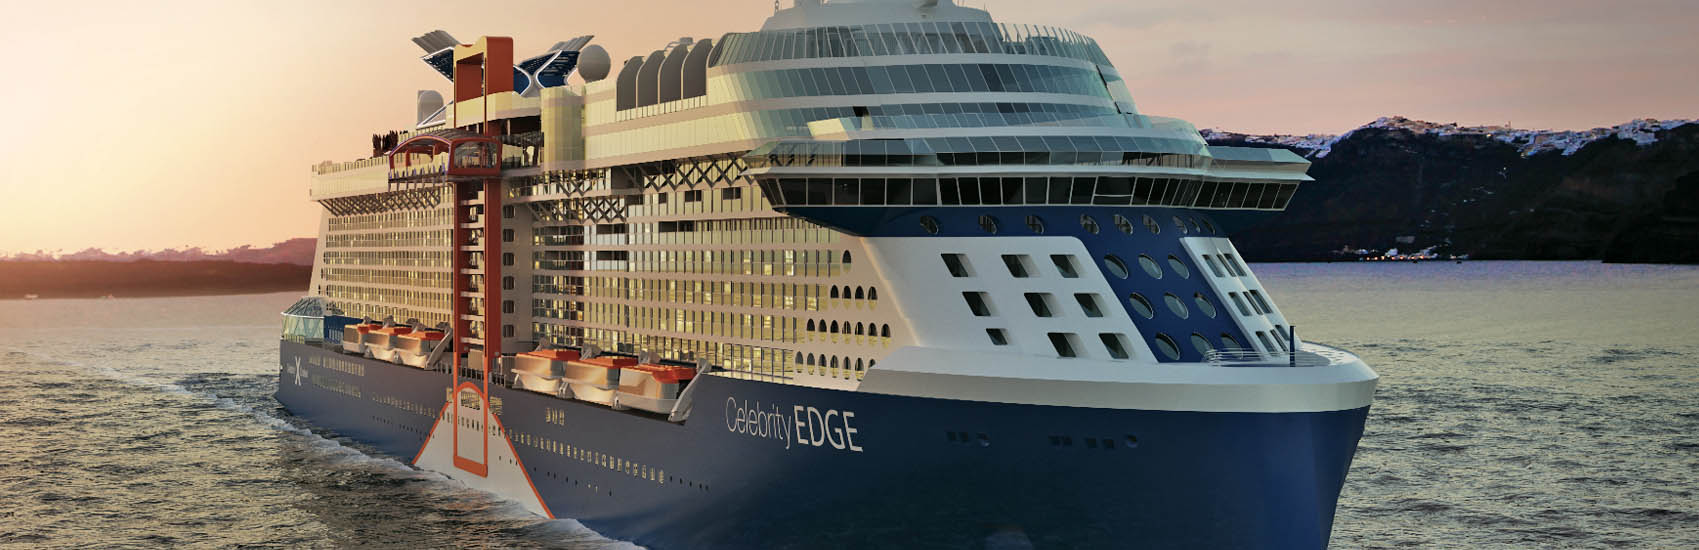 Complimentary Onboard Credit with Celebrity Cruises